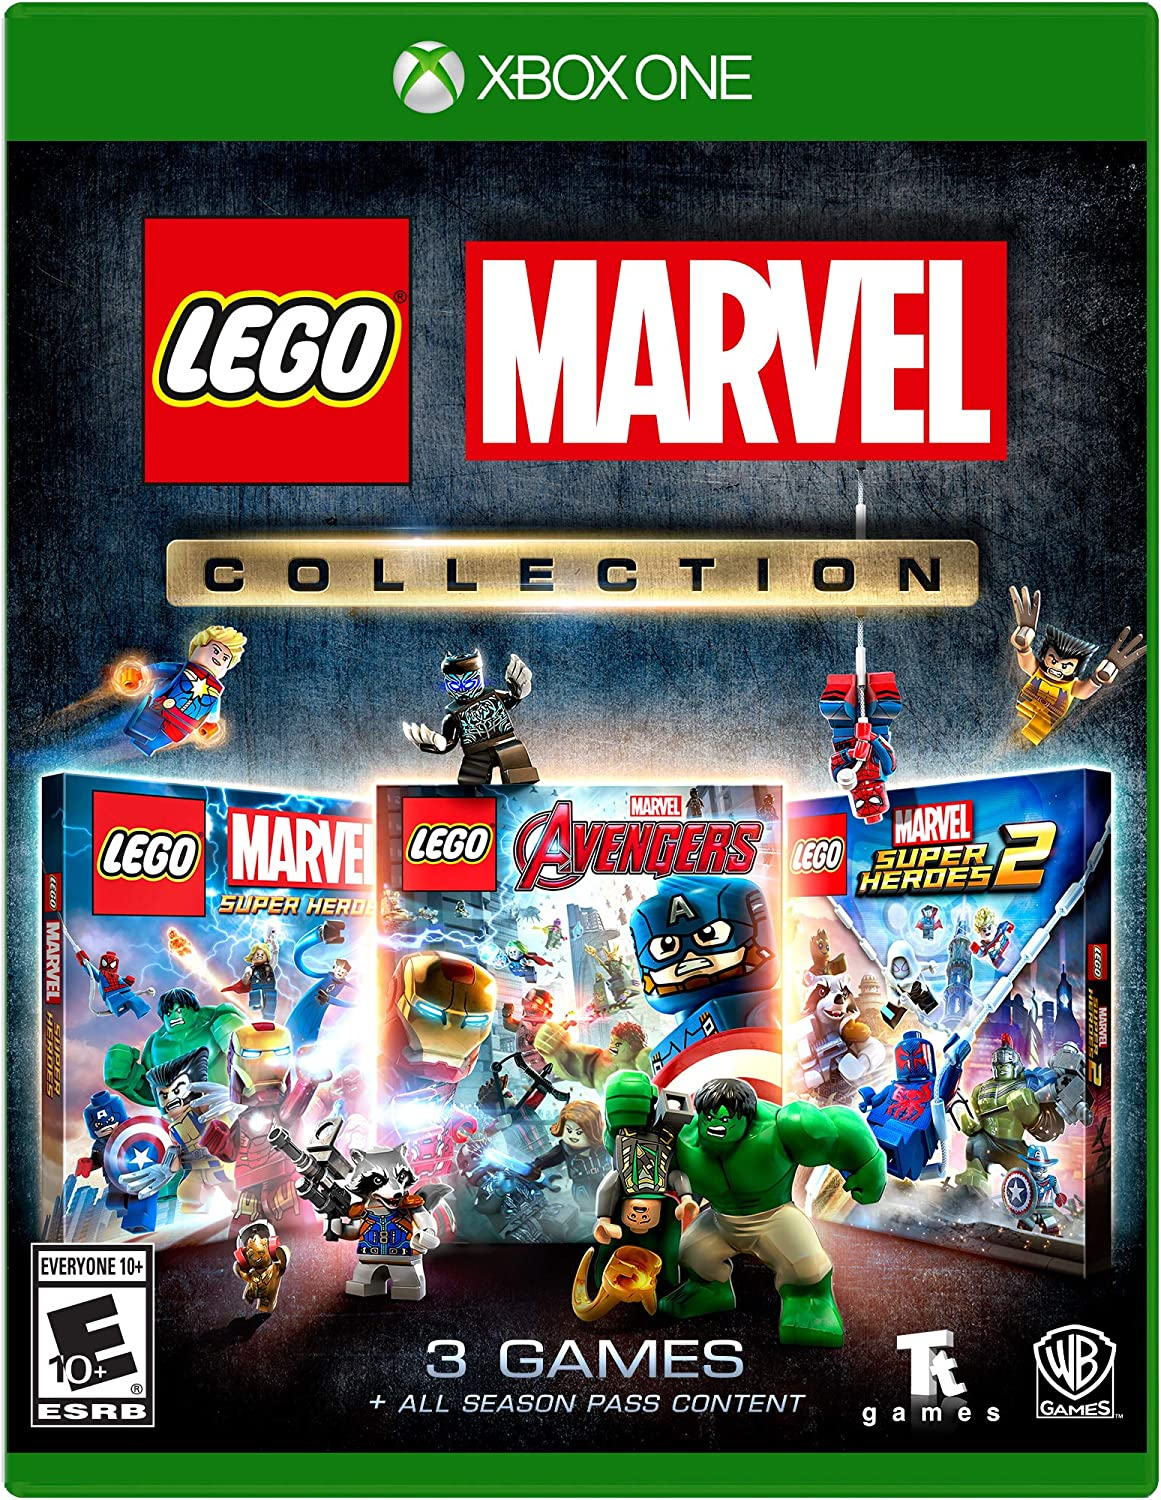 LEGO Marvel Collection for Xbo...